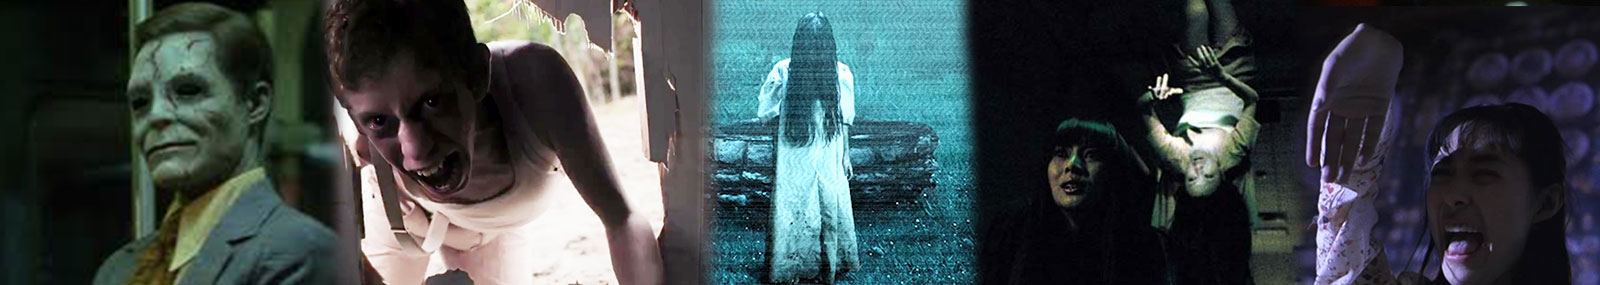 Ghosts_Thin_Banner_Ring_v01